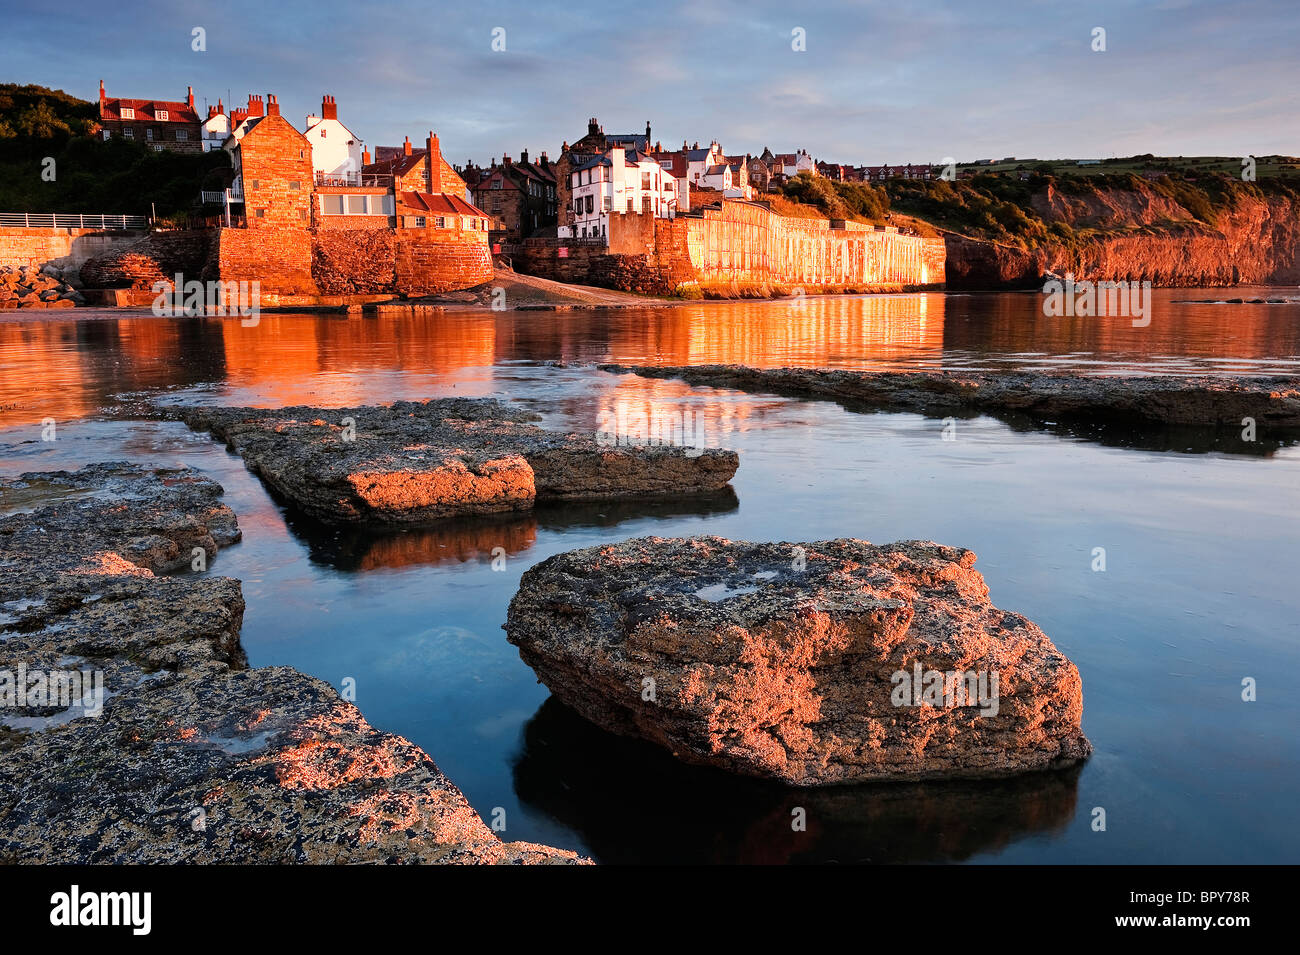 Early morning sun on the rocks and village at Robin Hood's Bay - Stock Image